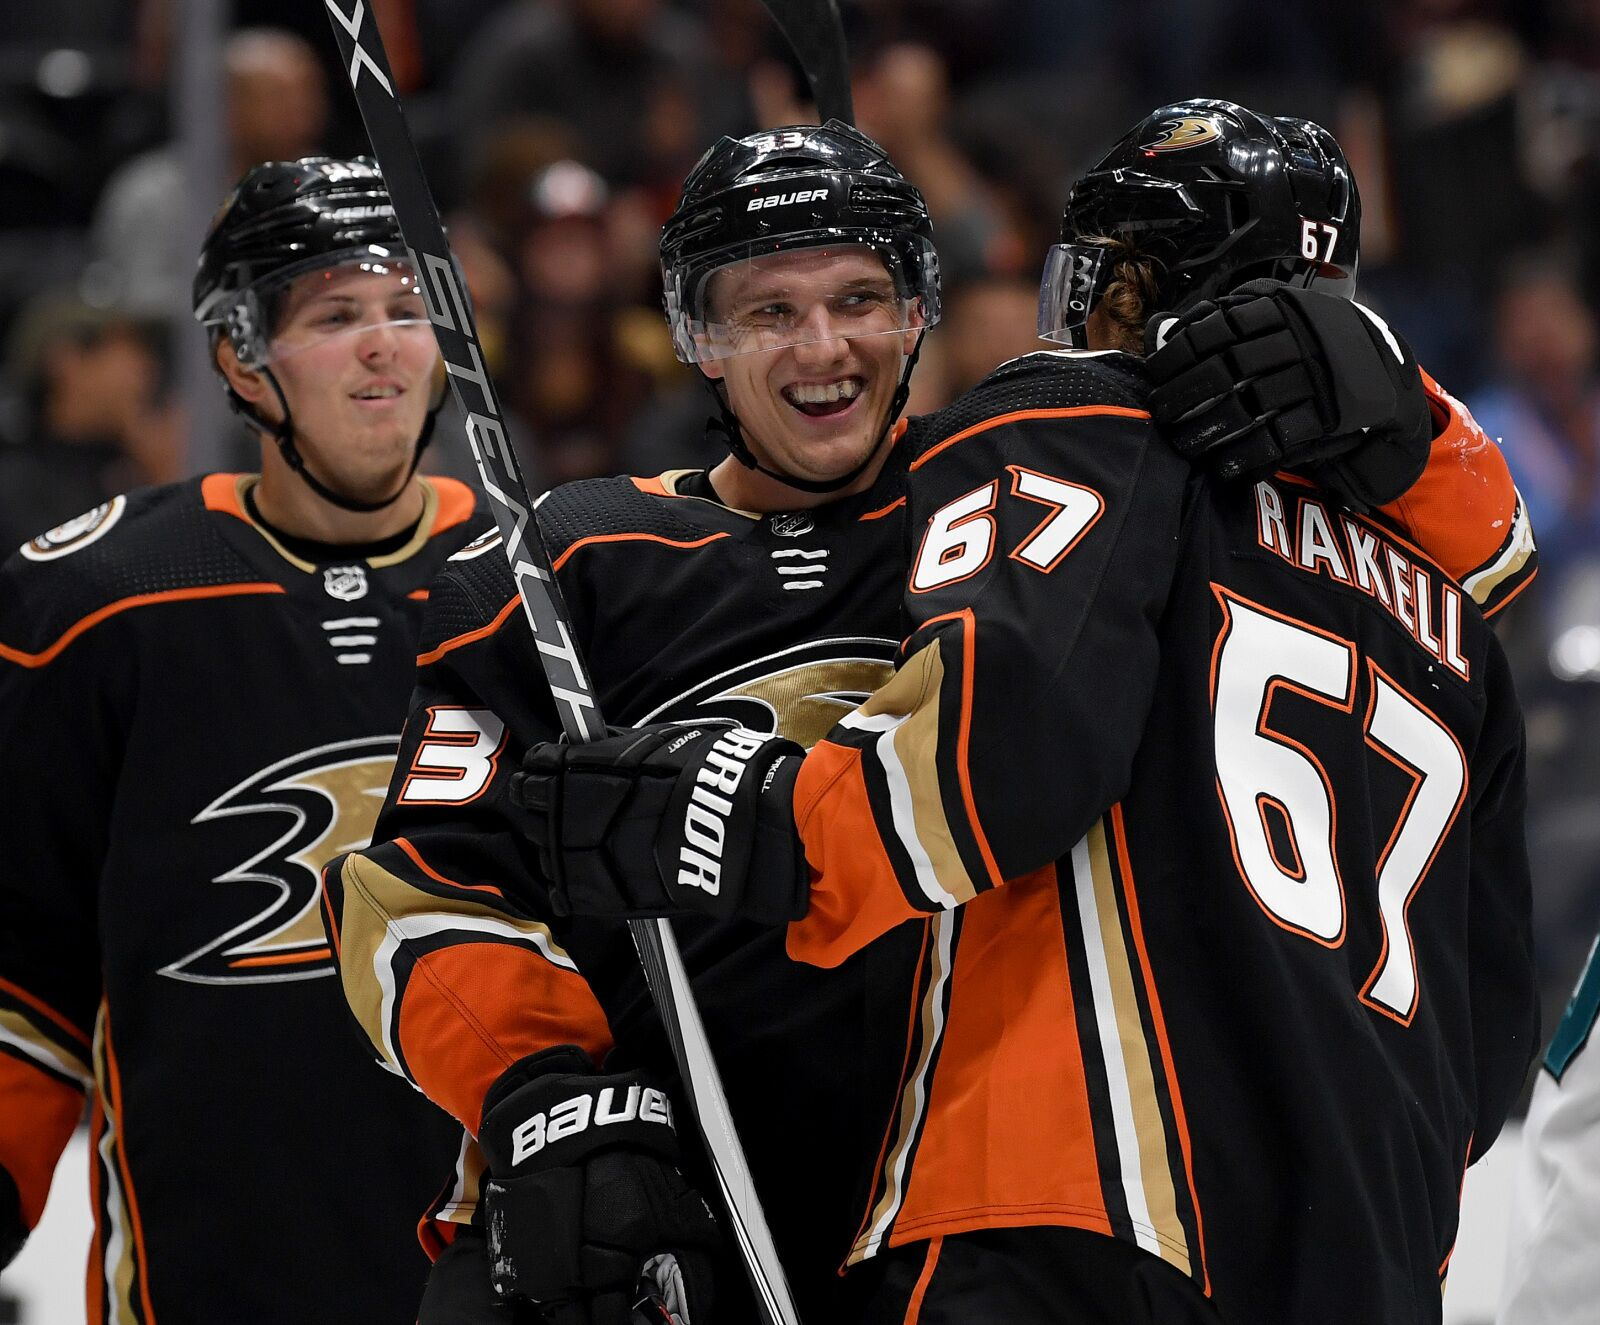 Anaheim Ducks: Superb goaltending, timely scoring has led to quick start